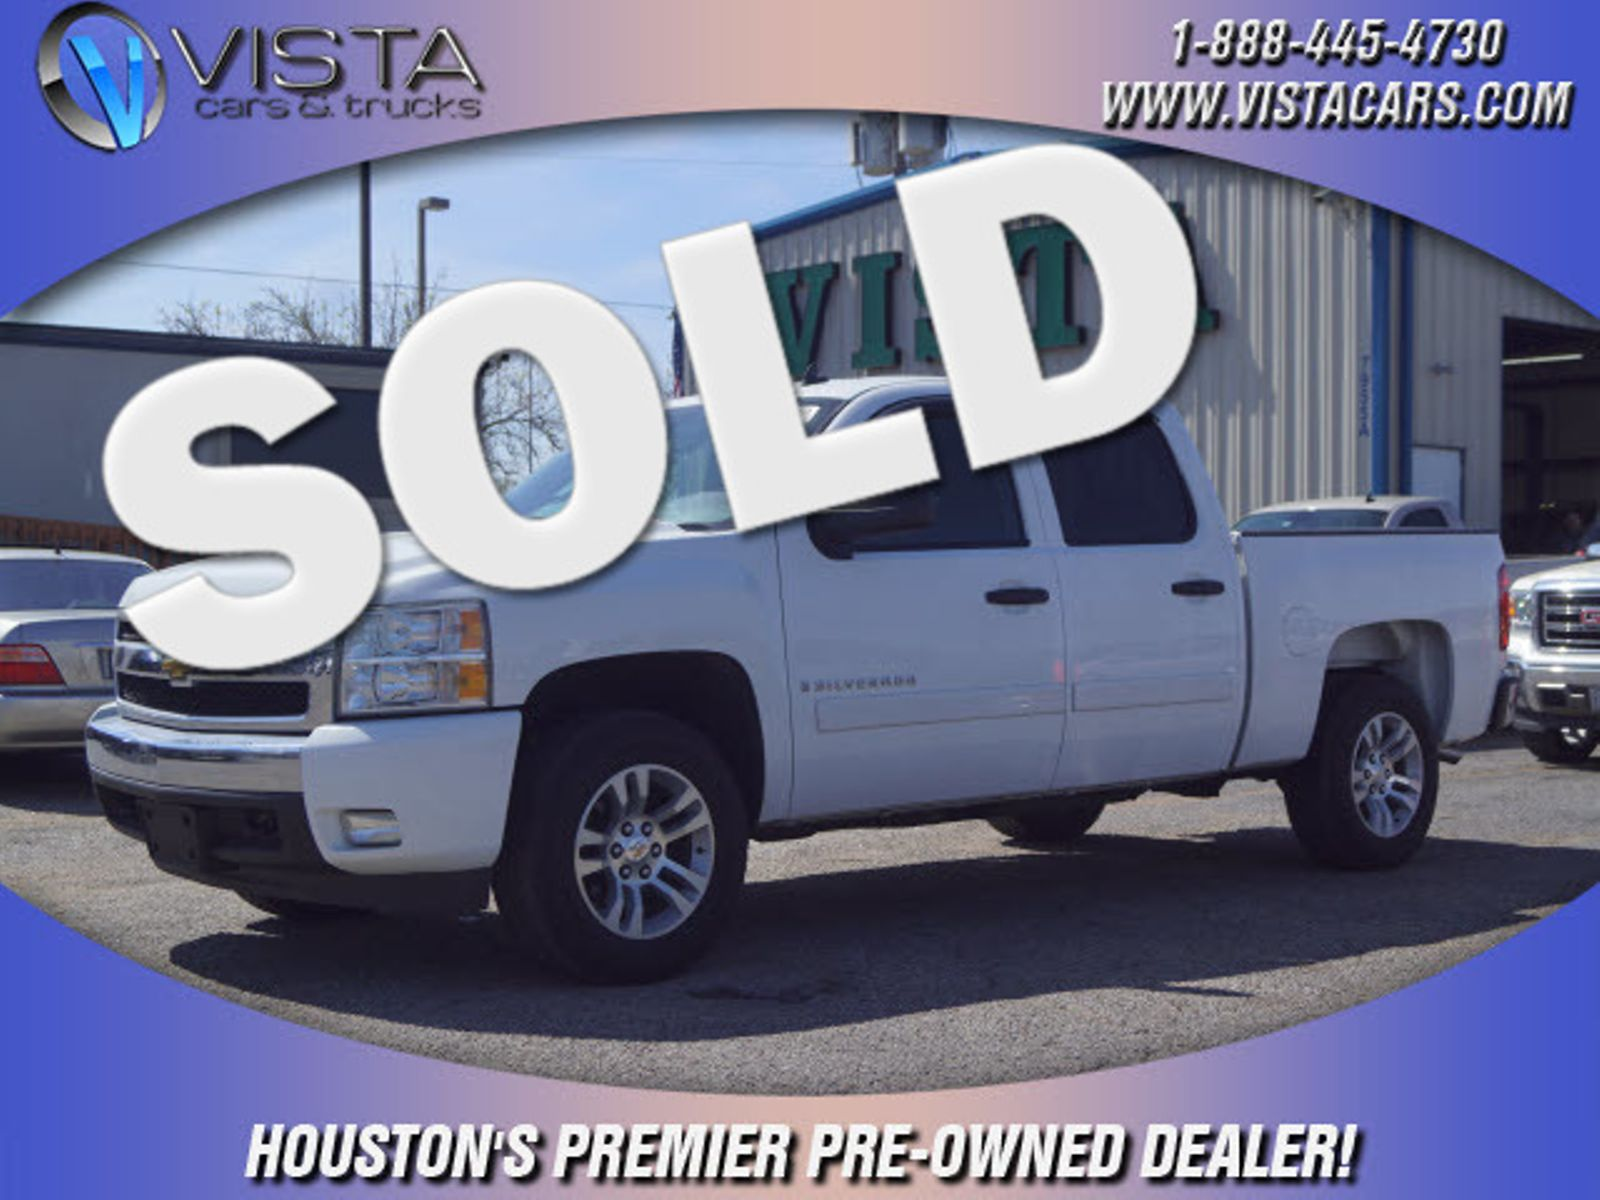 store sugarland chevy dealers dealer chevrolet houston used new front davis